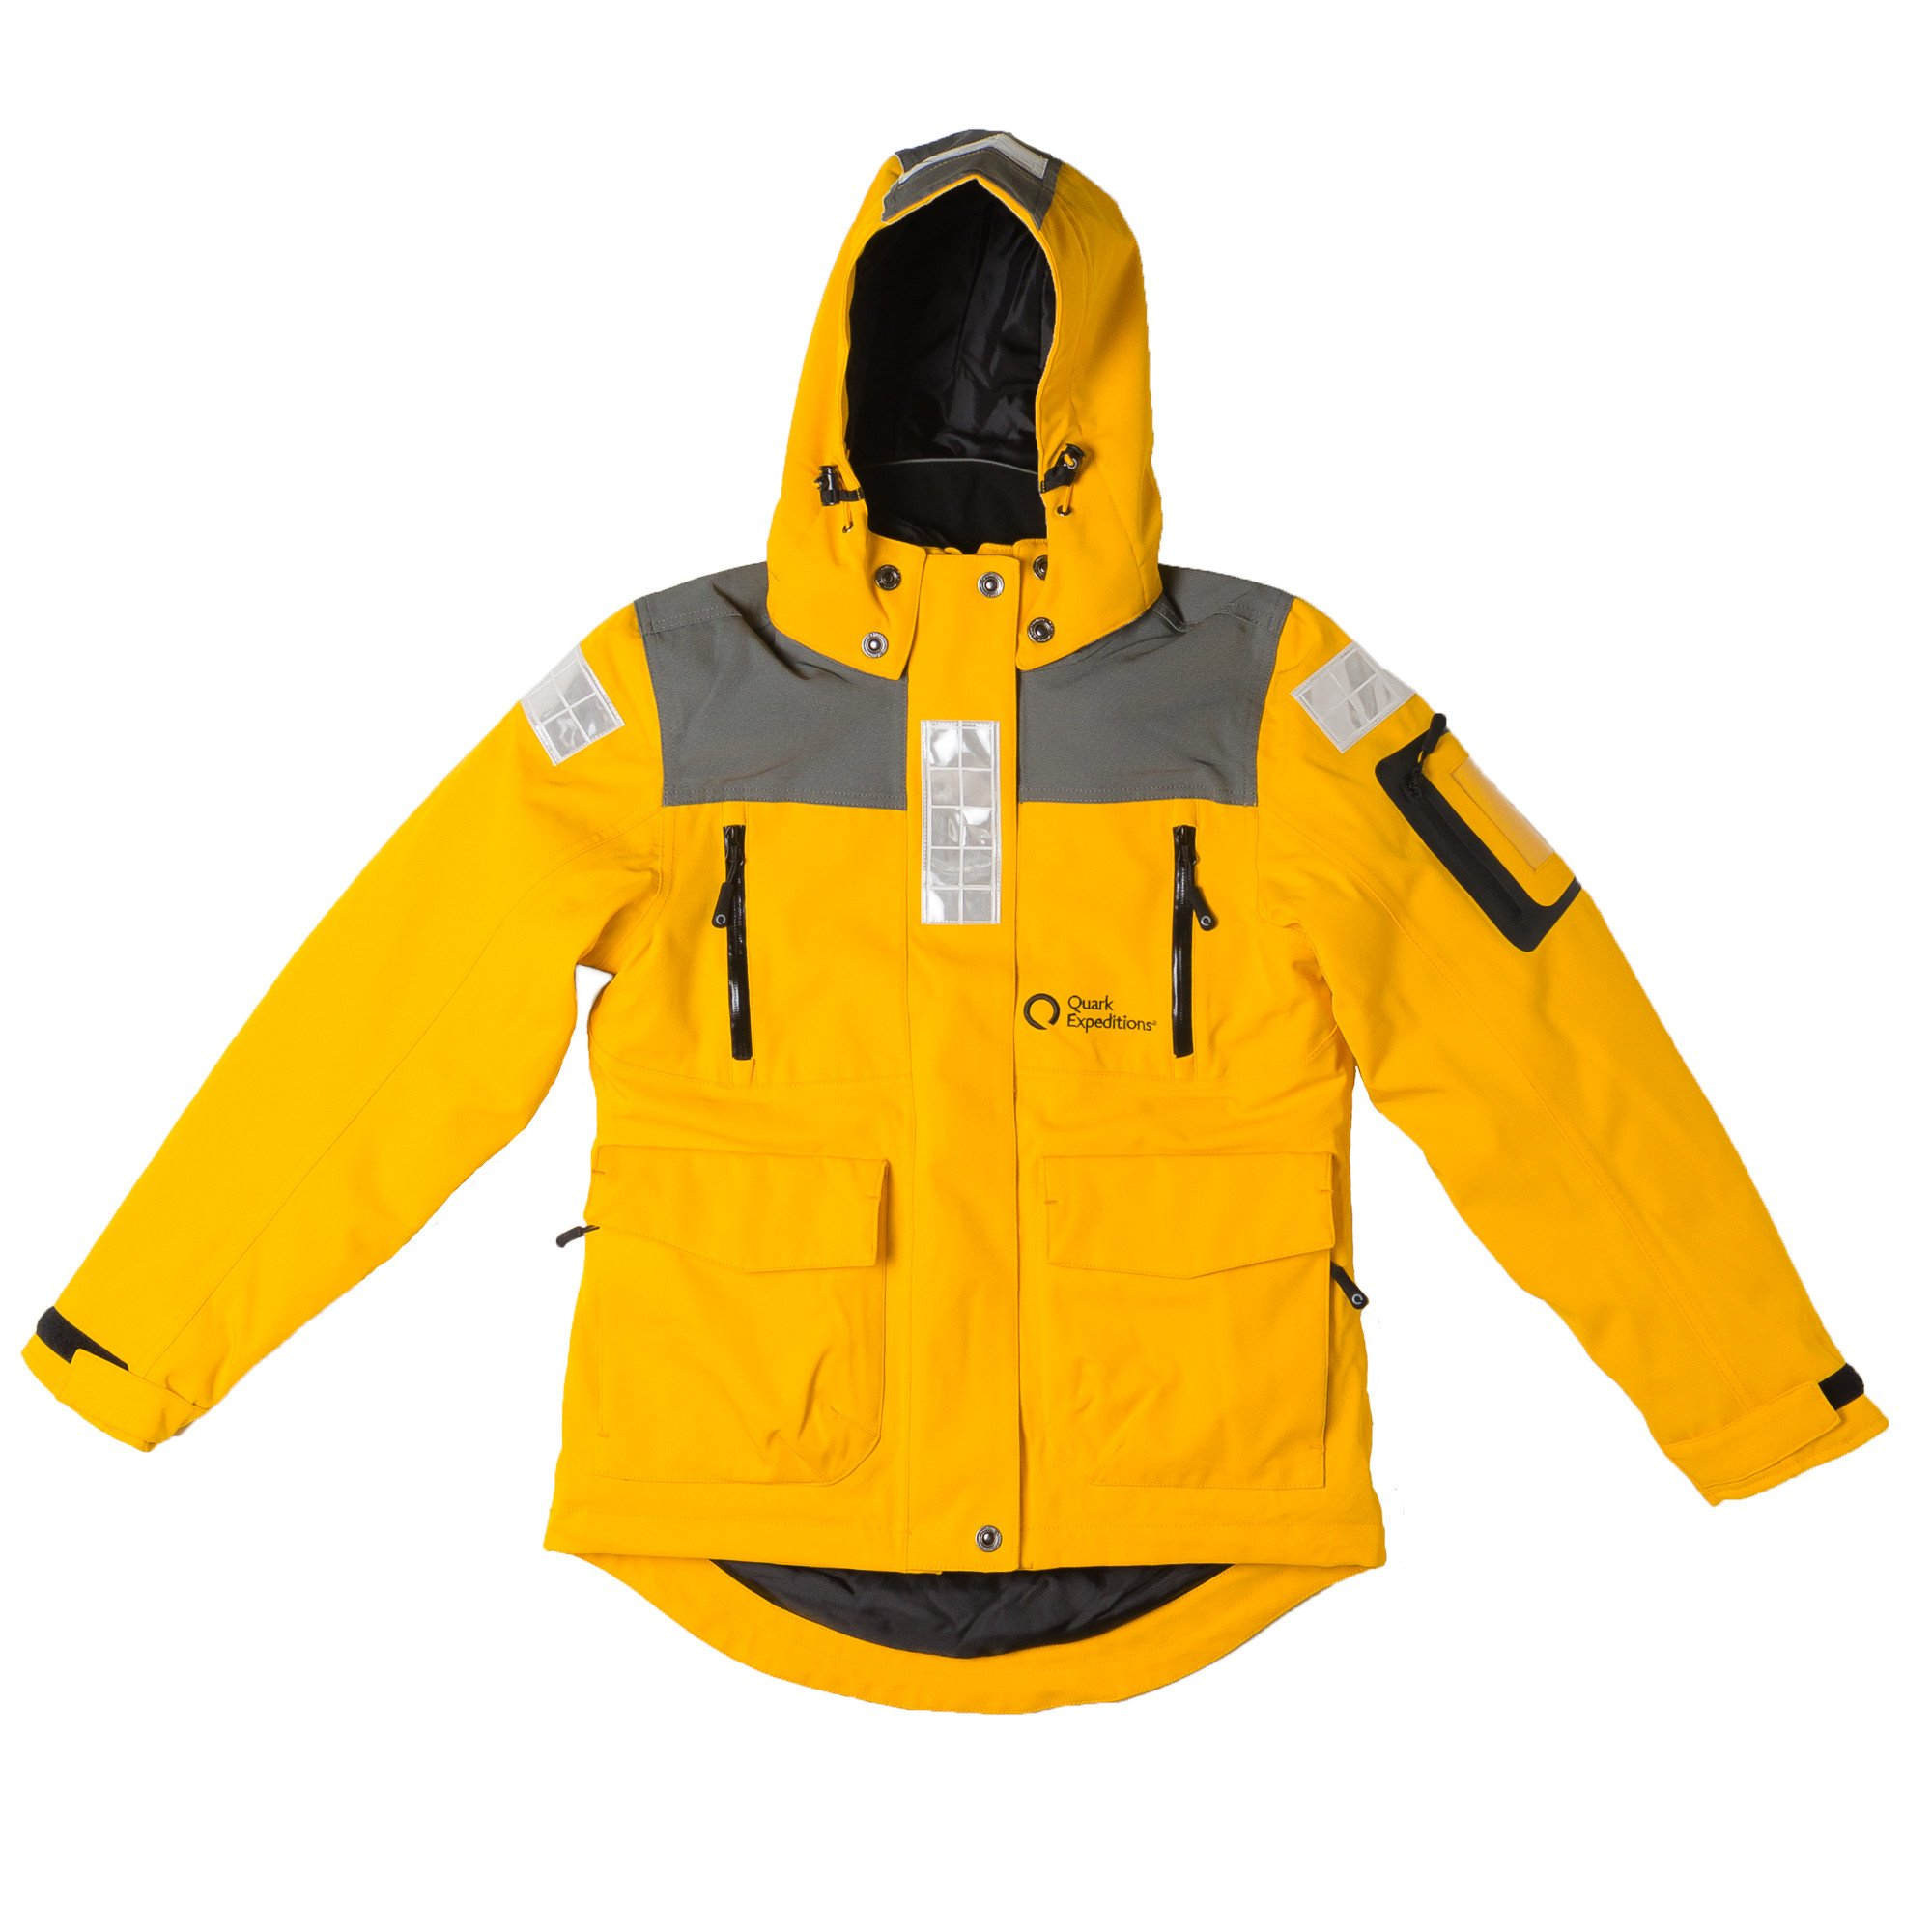 The complimentary Quark Parka is designed for all kinds of Arctic weather.